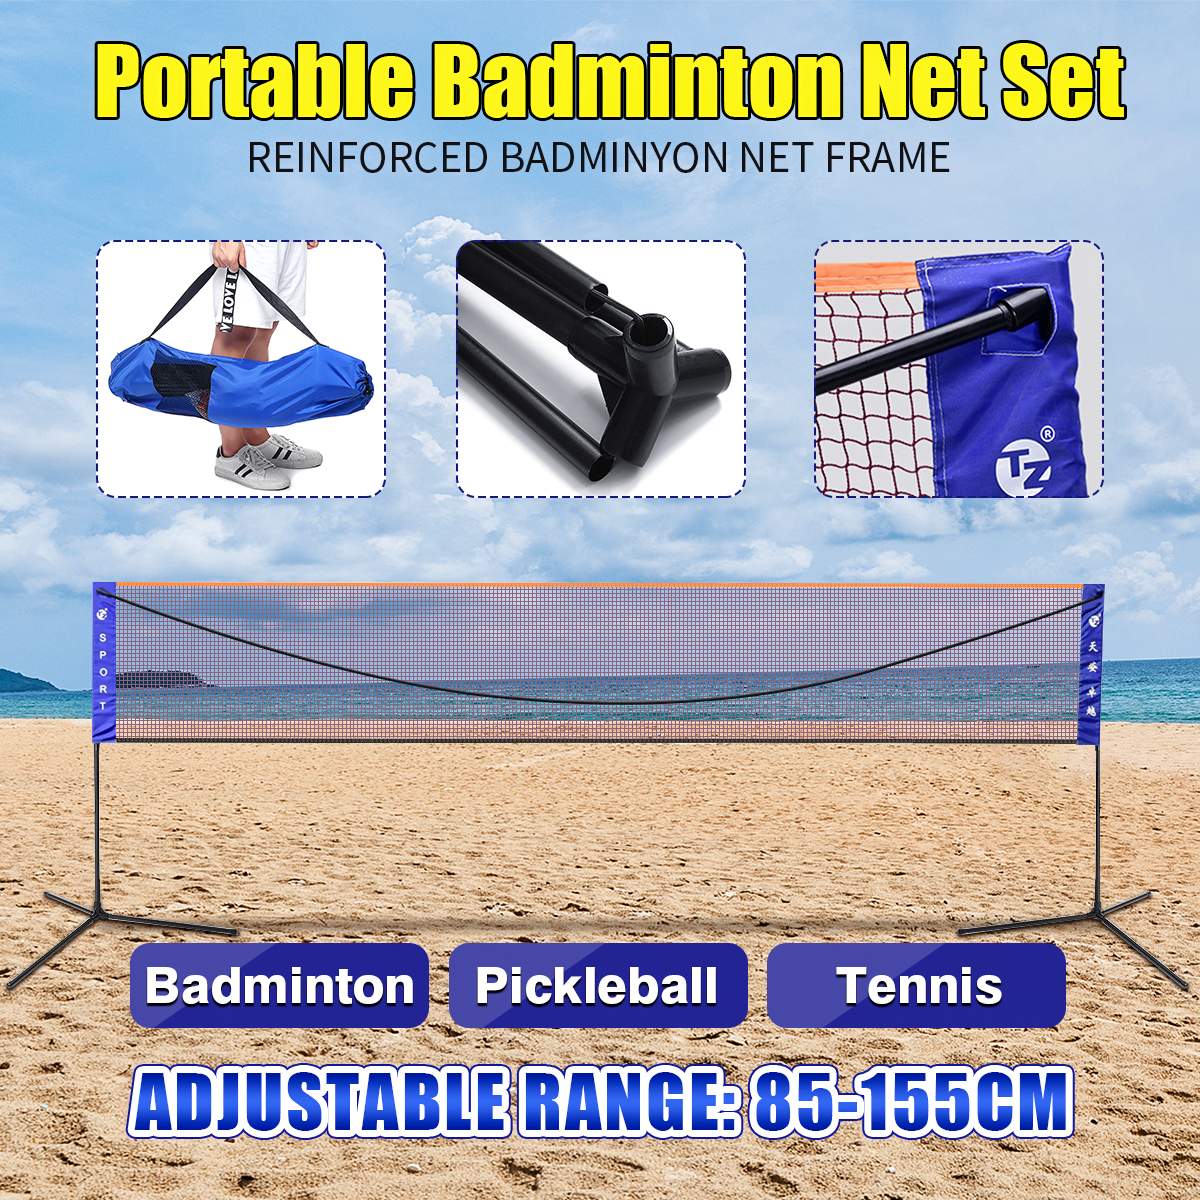 Portable Badminton Volleyball Tennis Net 610cm Width Adjustable Height Sport Badminton Net Kit With Stand/Frame And Carry Bag